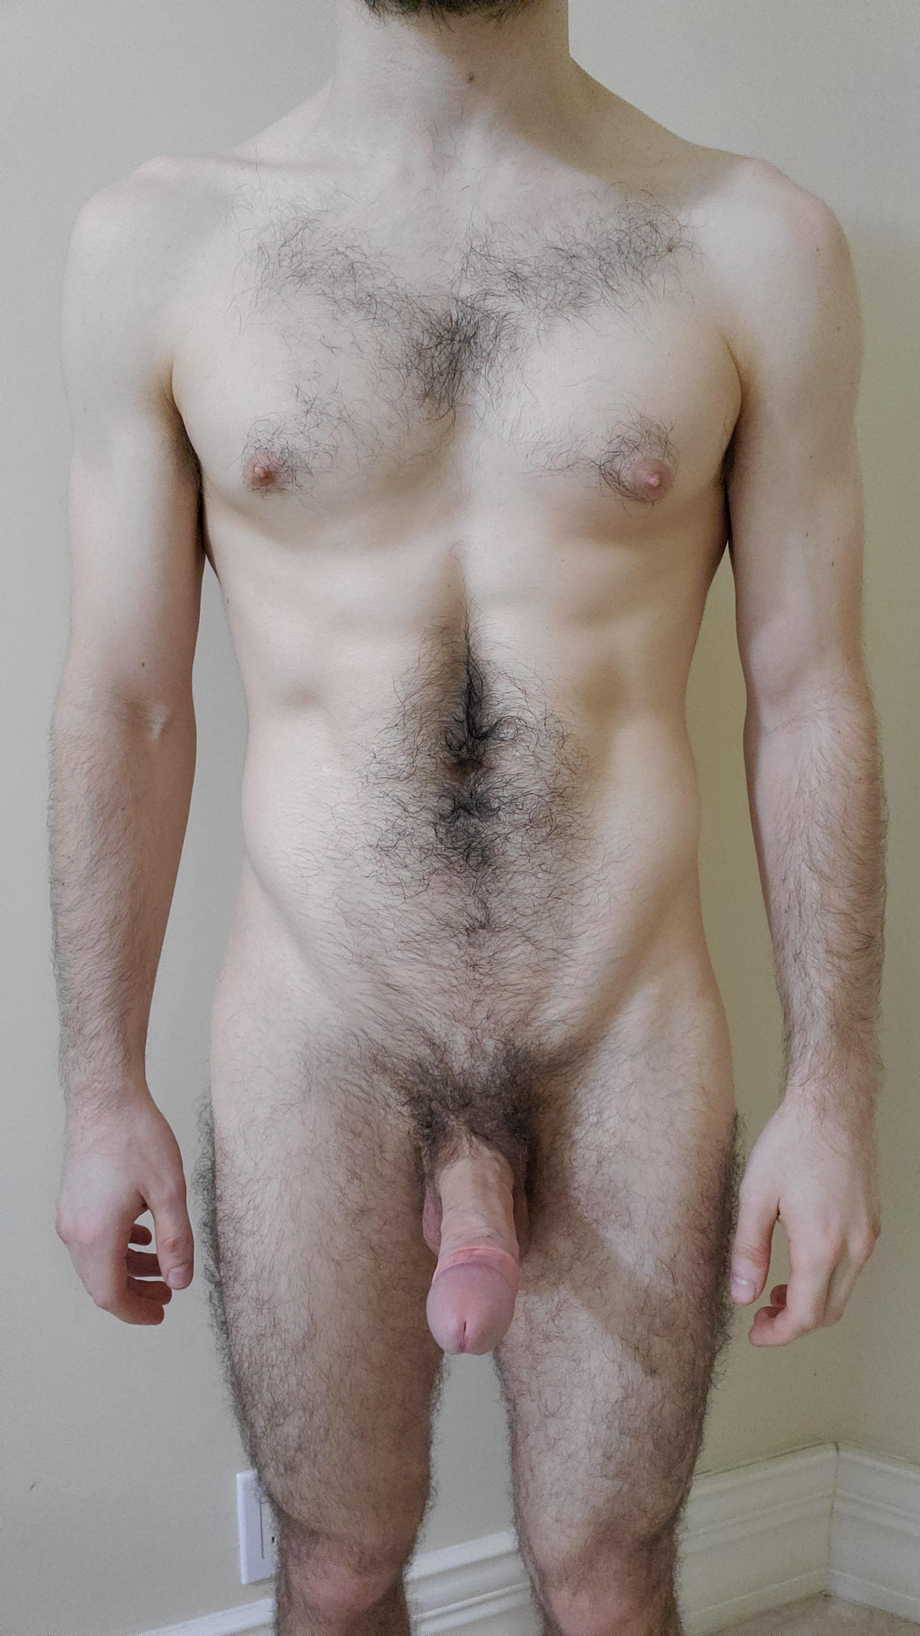 Continental drift, later developed further into the theory of plate tectonics, wasn\'t widely accepted until the 1960s. That\'s so recent! (M) | Muscles  Porn XXX | Hot XXX Gays